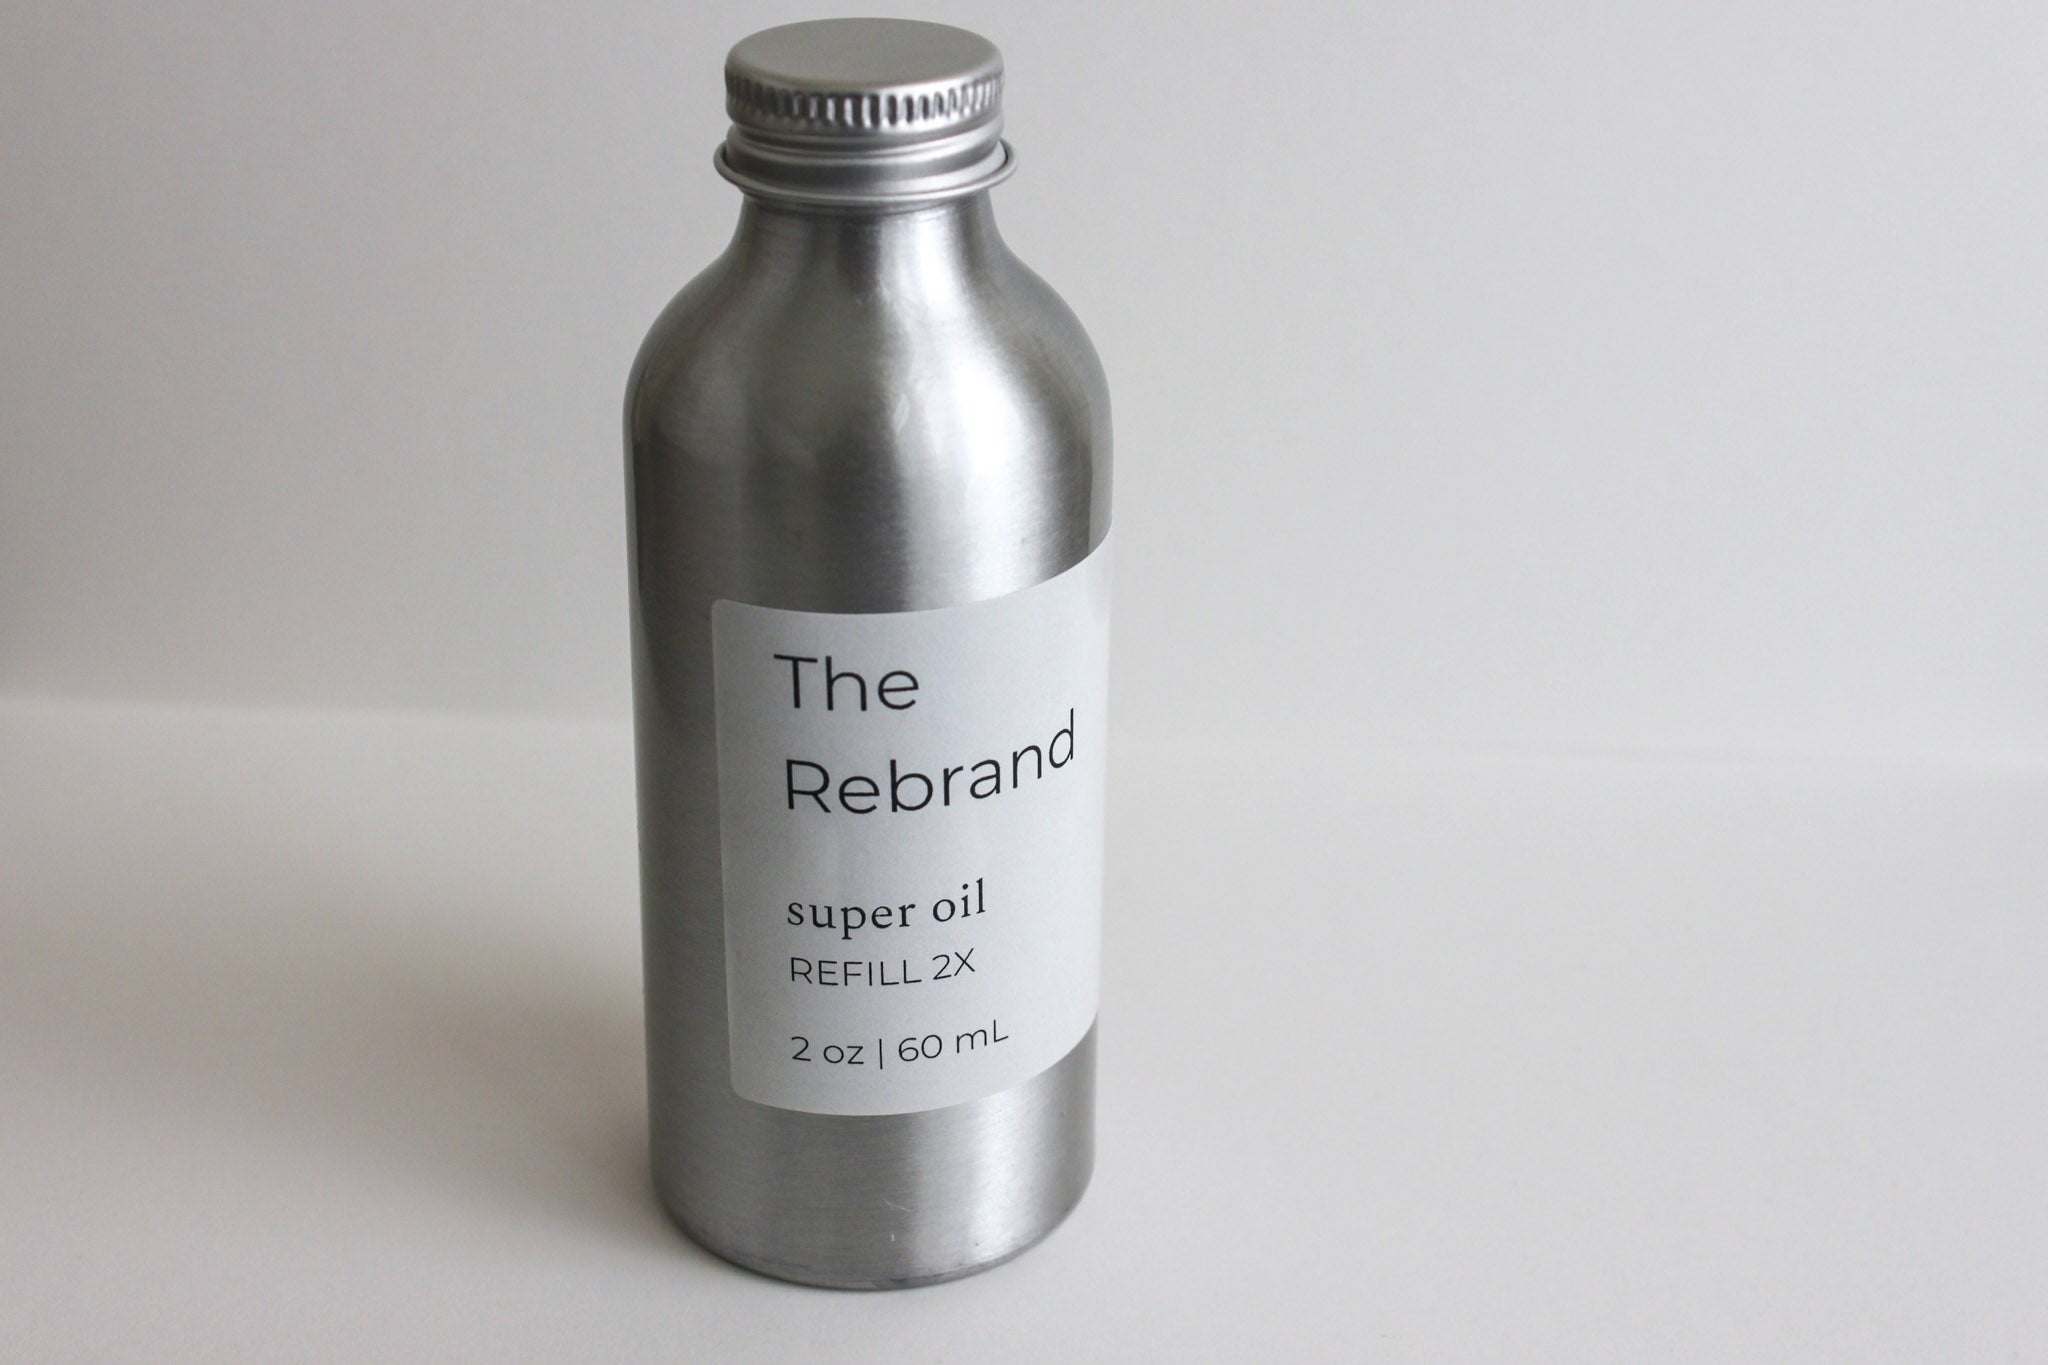 The Rebrand Sustainable Skincare Refillable Organic Facial Oil